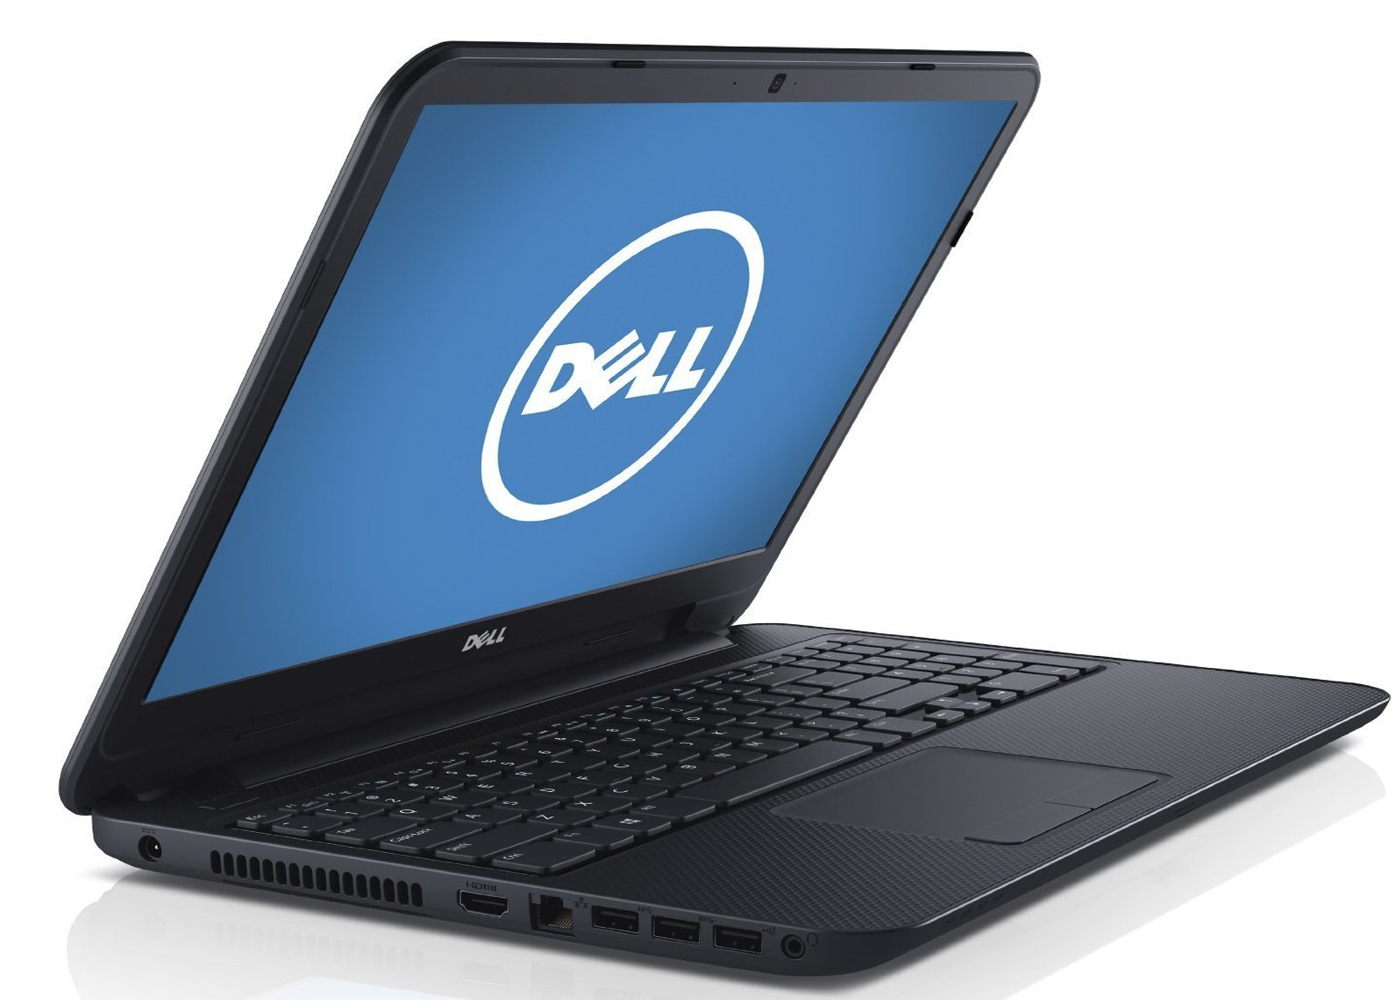 Letter B Photo as well Best All In One Desktop  puter furthermore 5 Best Laptop For Video Editing 2014 likewise Cpu Cooler Solution likewise About The Dell Inspiron 15 3521 15 6 Inch Laptop Black Features And Technical Details. on desktop ram